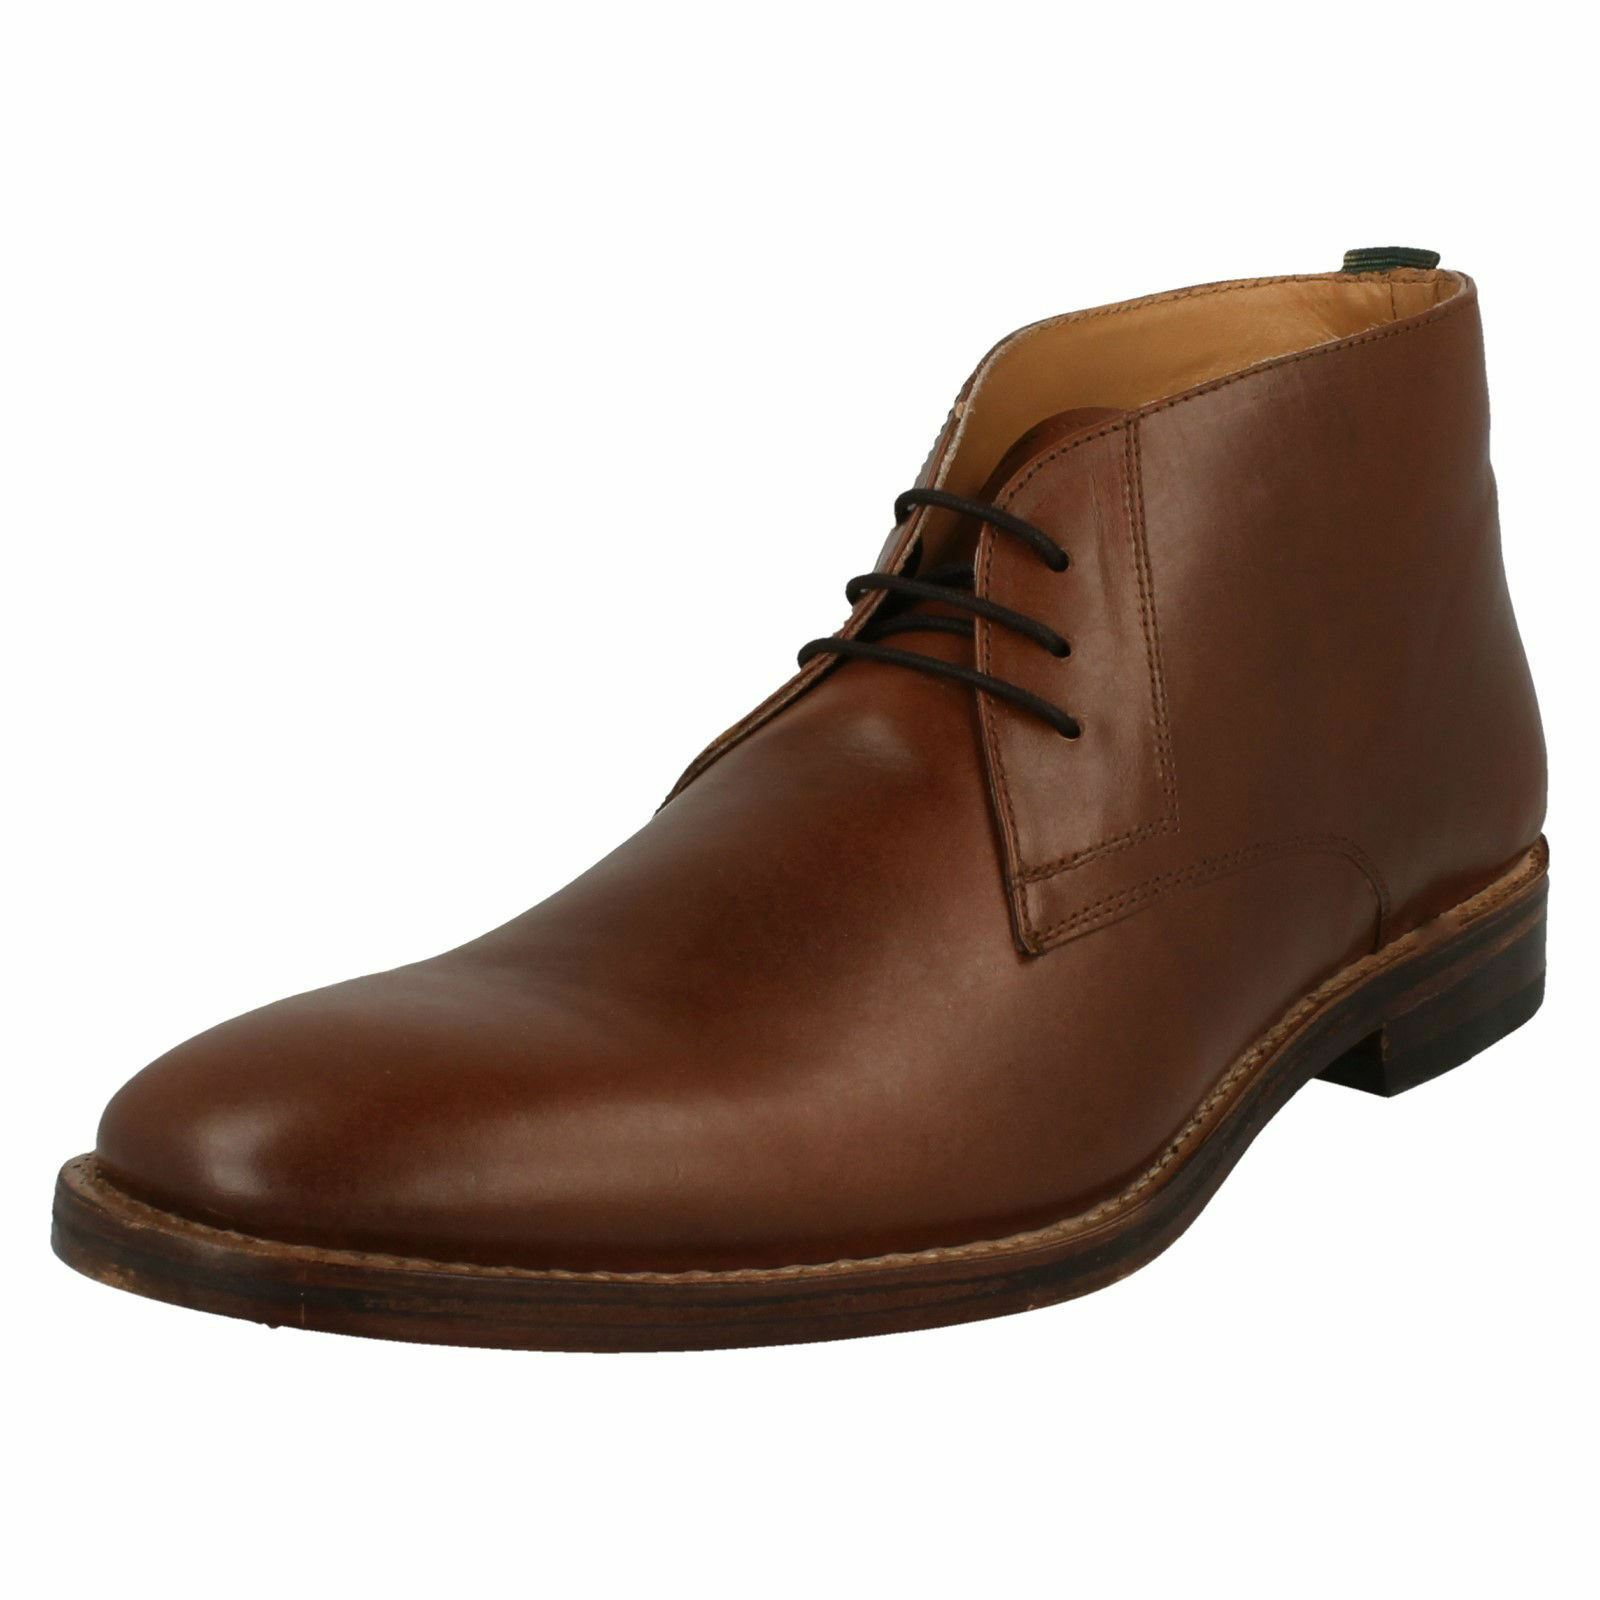 Mens Catesby Lace Up Smart Desert Stiefel - MRG50504C